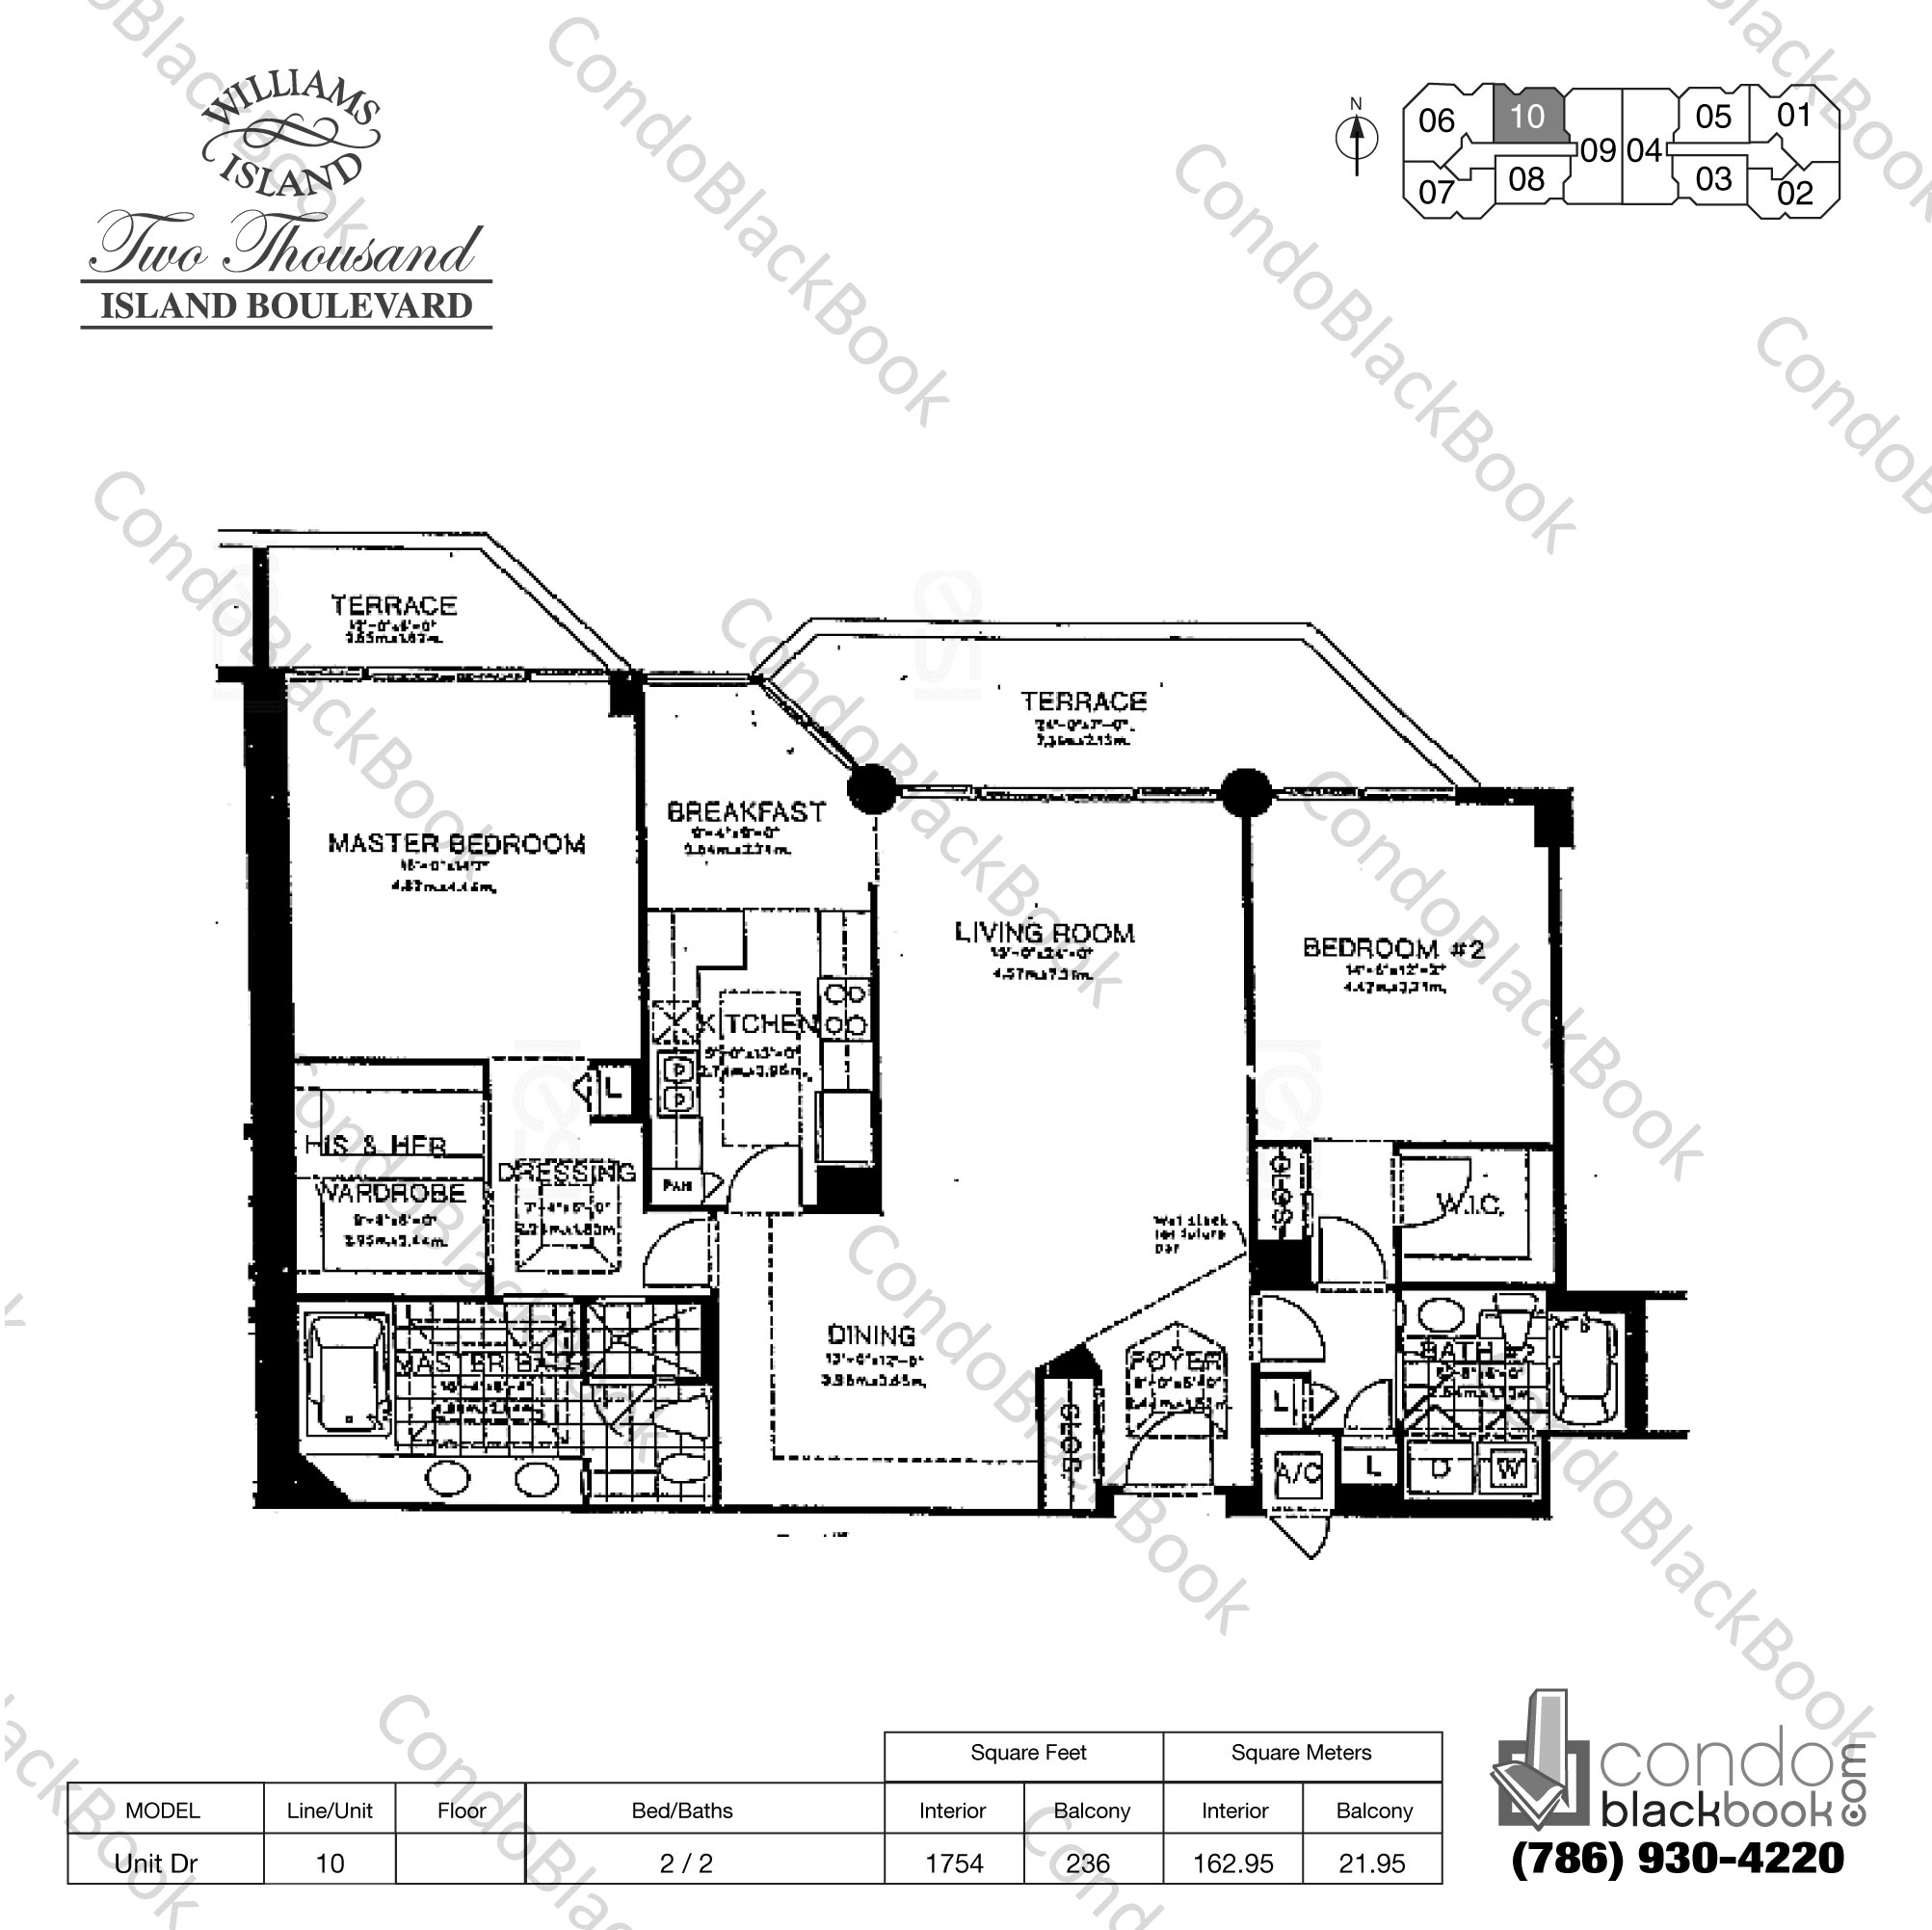 Floor plan for Williams Island 2000 Aventura, model Unit Dr, line 10, 2 / 2 bedrooms, 1754 sq ft